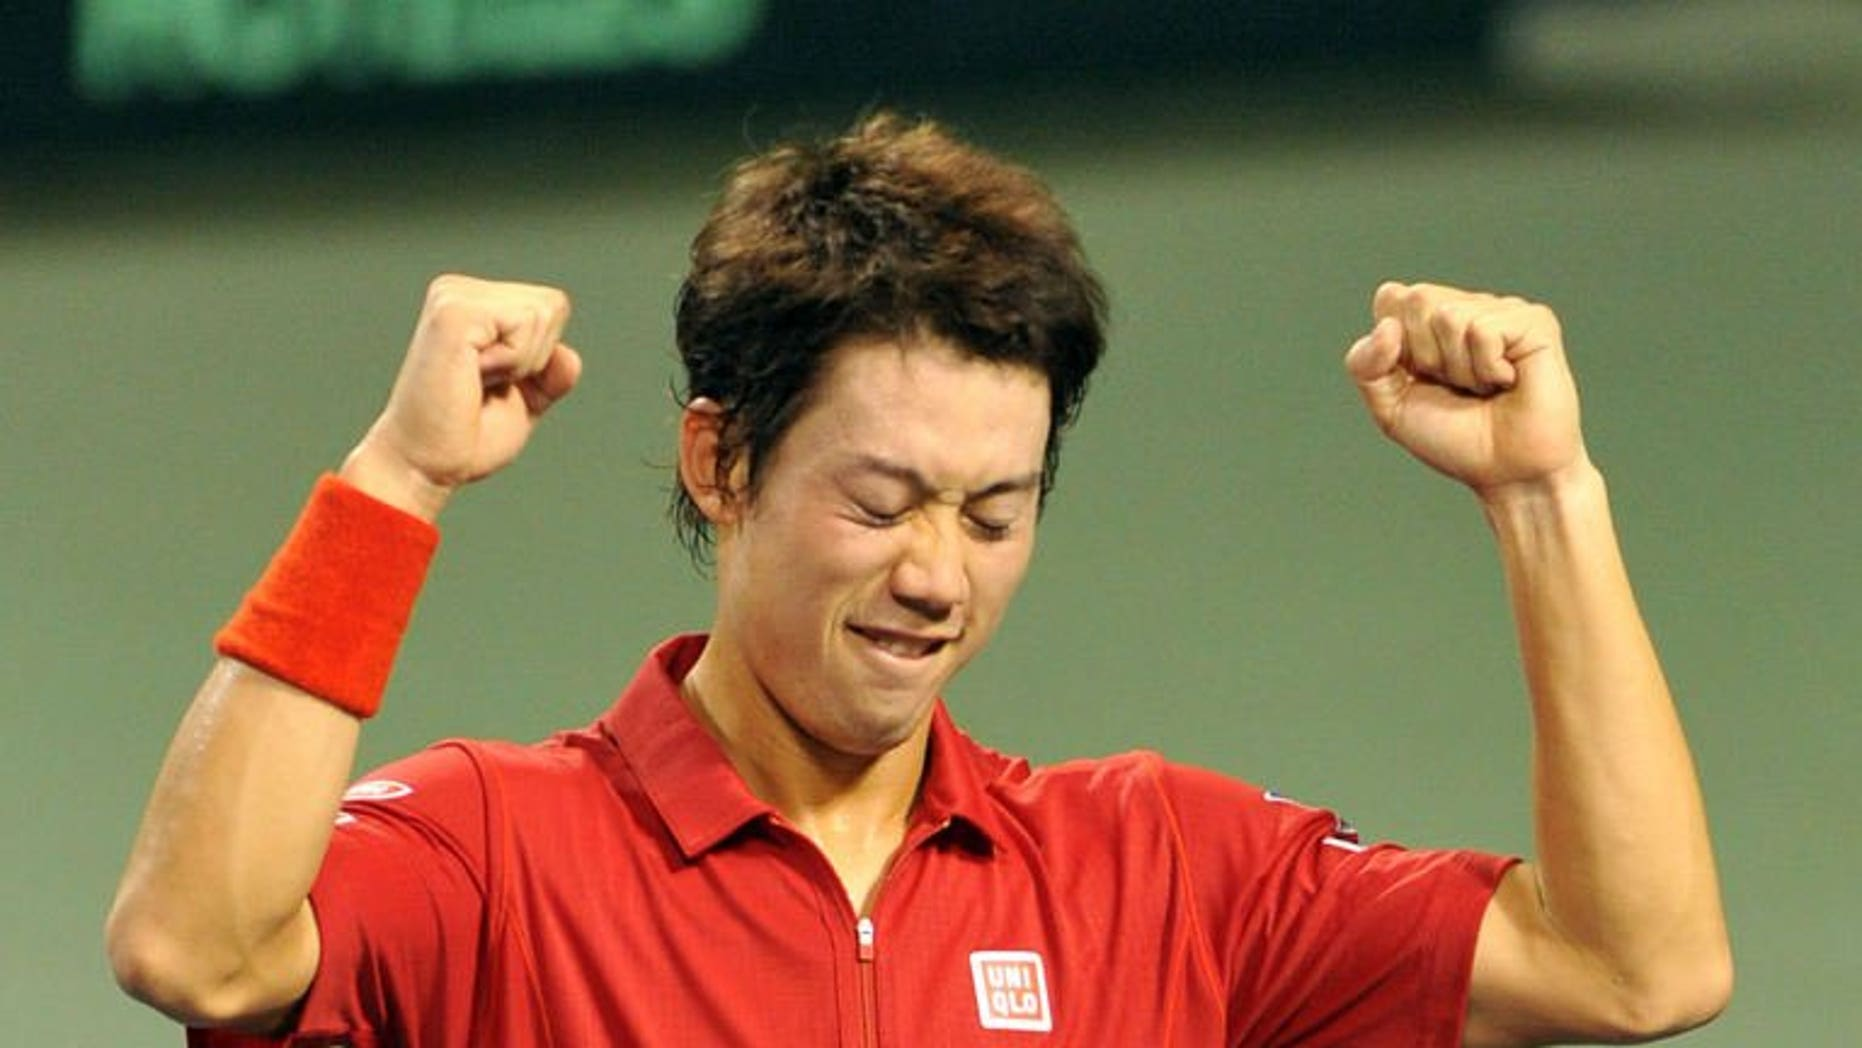 Japan's Kei Nishikori celebrates his win over Santiago Giraldo of Colombia after their Davis Cup World Group play-off in Tokyo on September 15, 2013. Nishikori beat Giraldo 6-1, 6-2, 6-4, propelling Japan back into the Davis Cup world group.